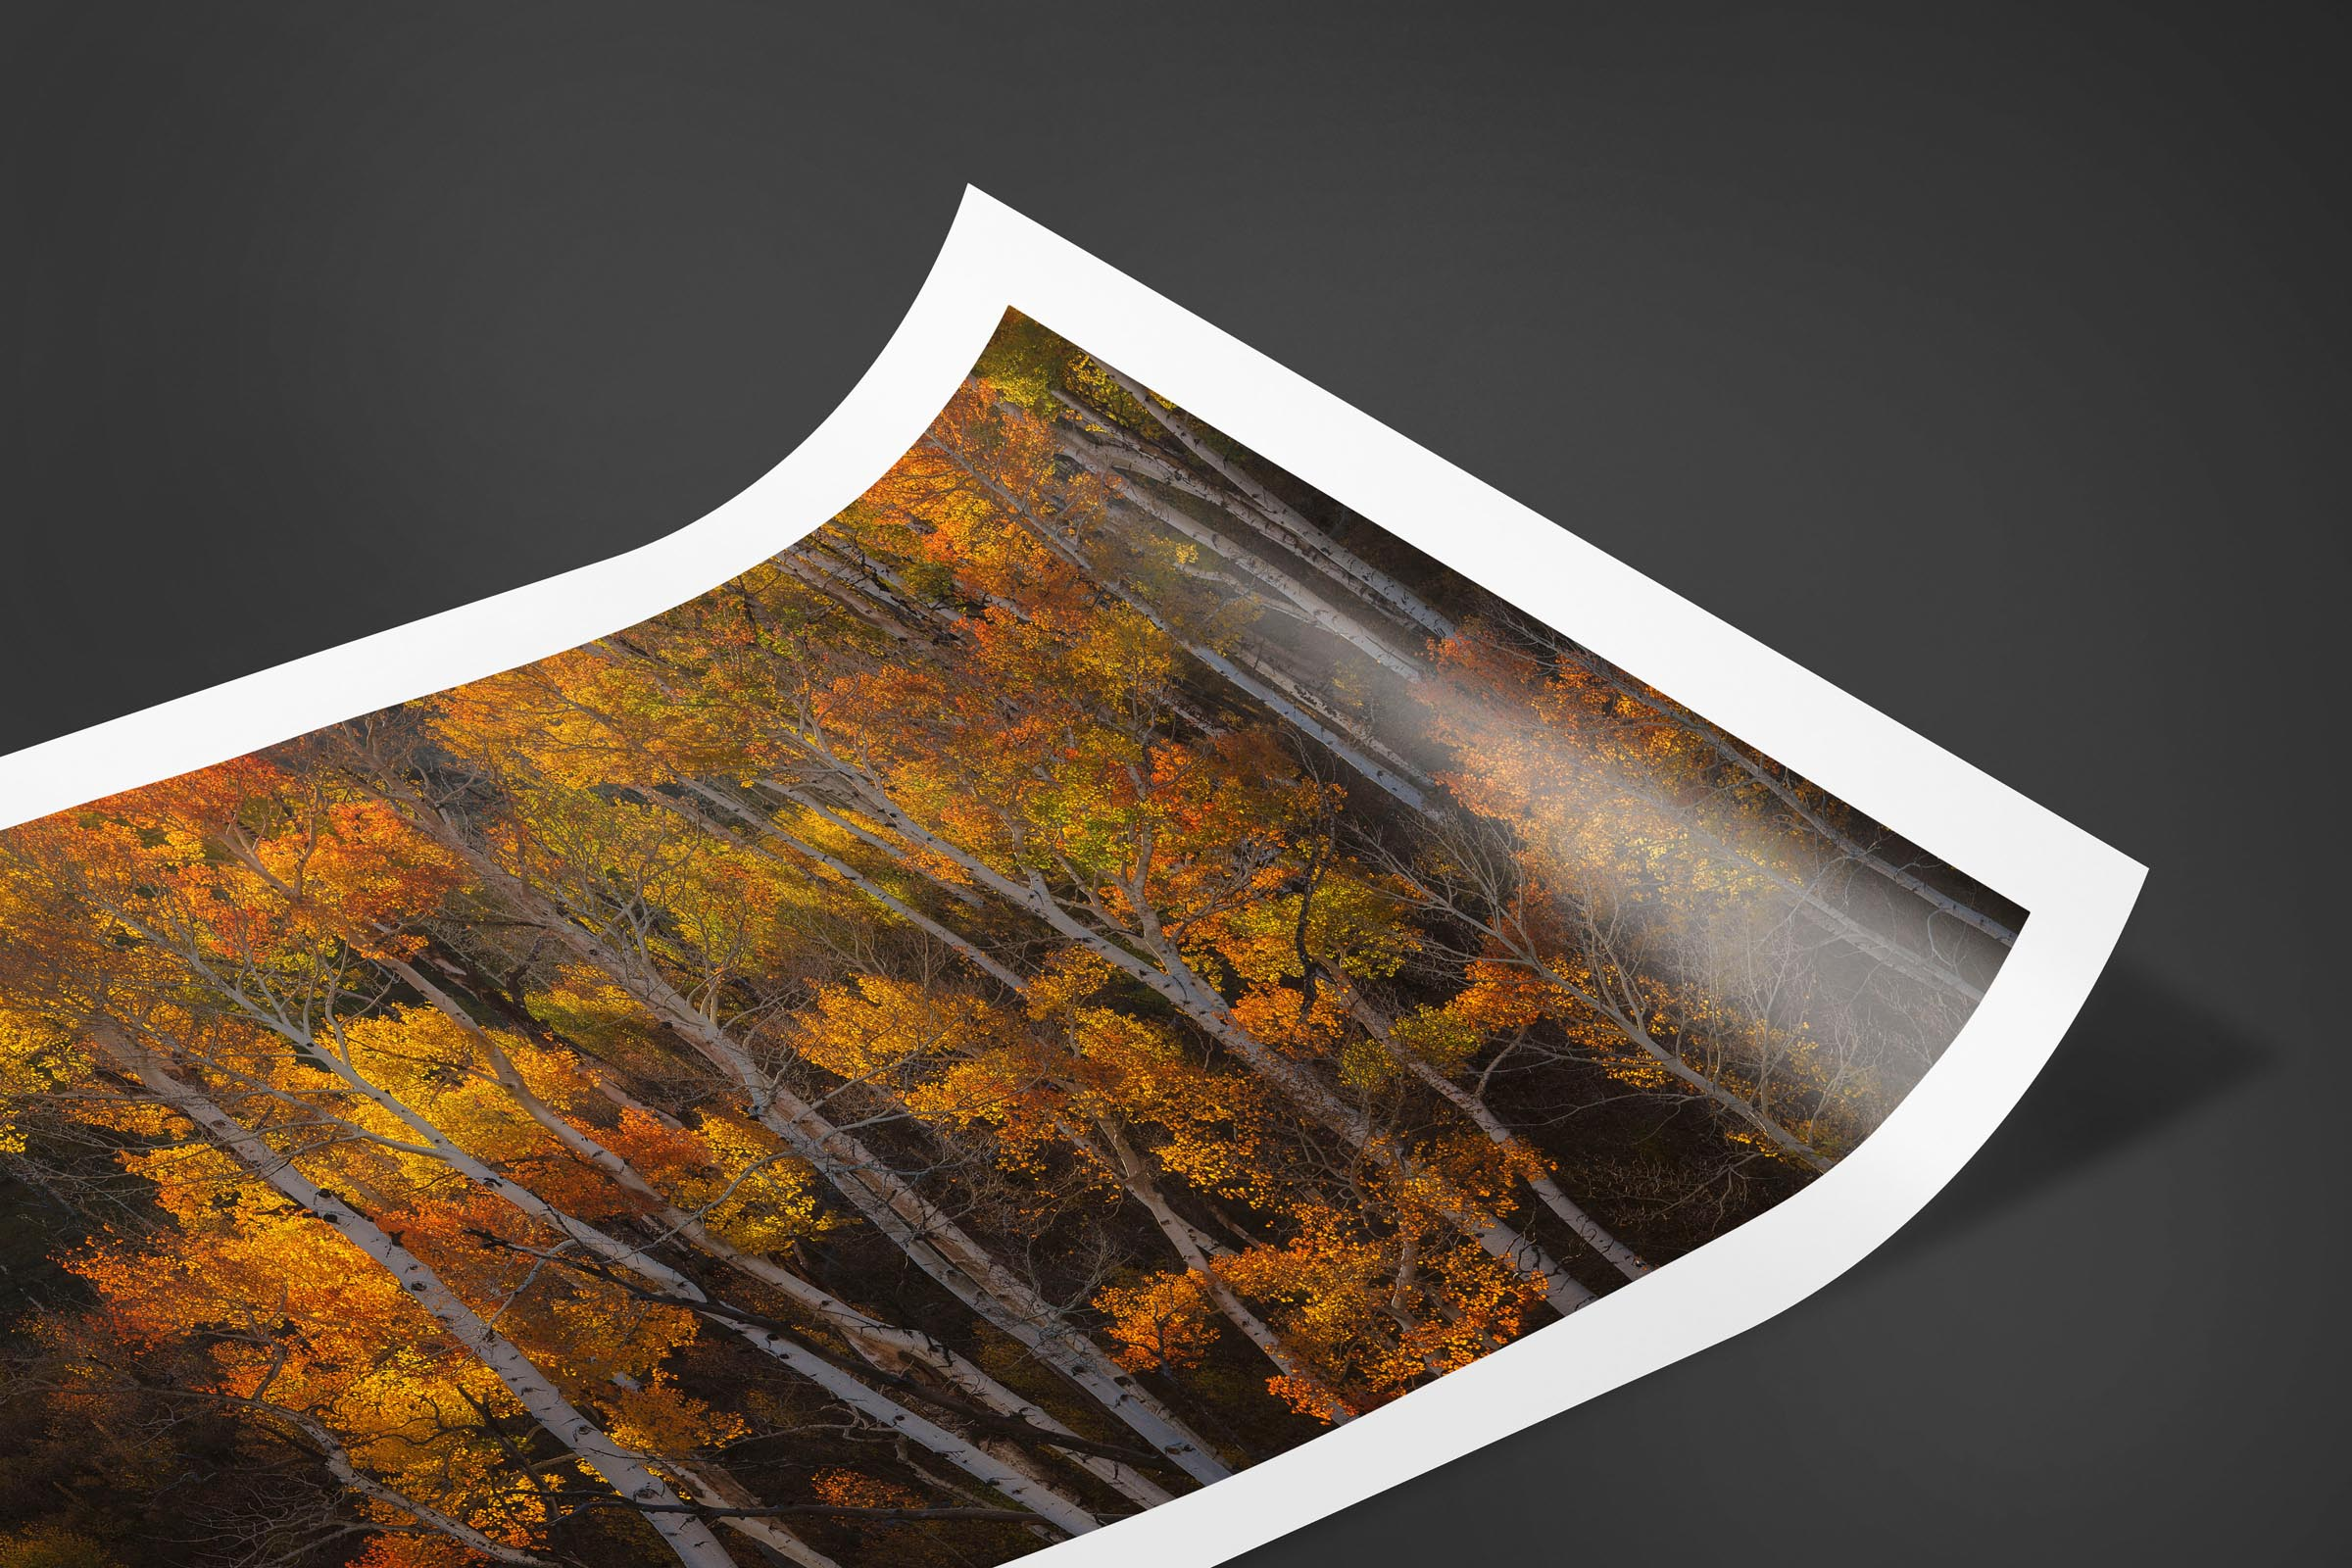 Fine art limited edition print of Aspen Forest in San Juan Mountains, Colorado by Brent Goldman Photography